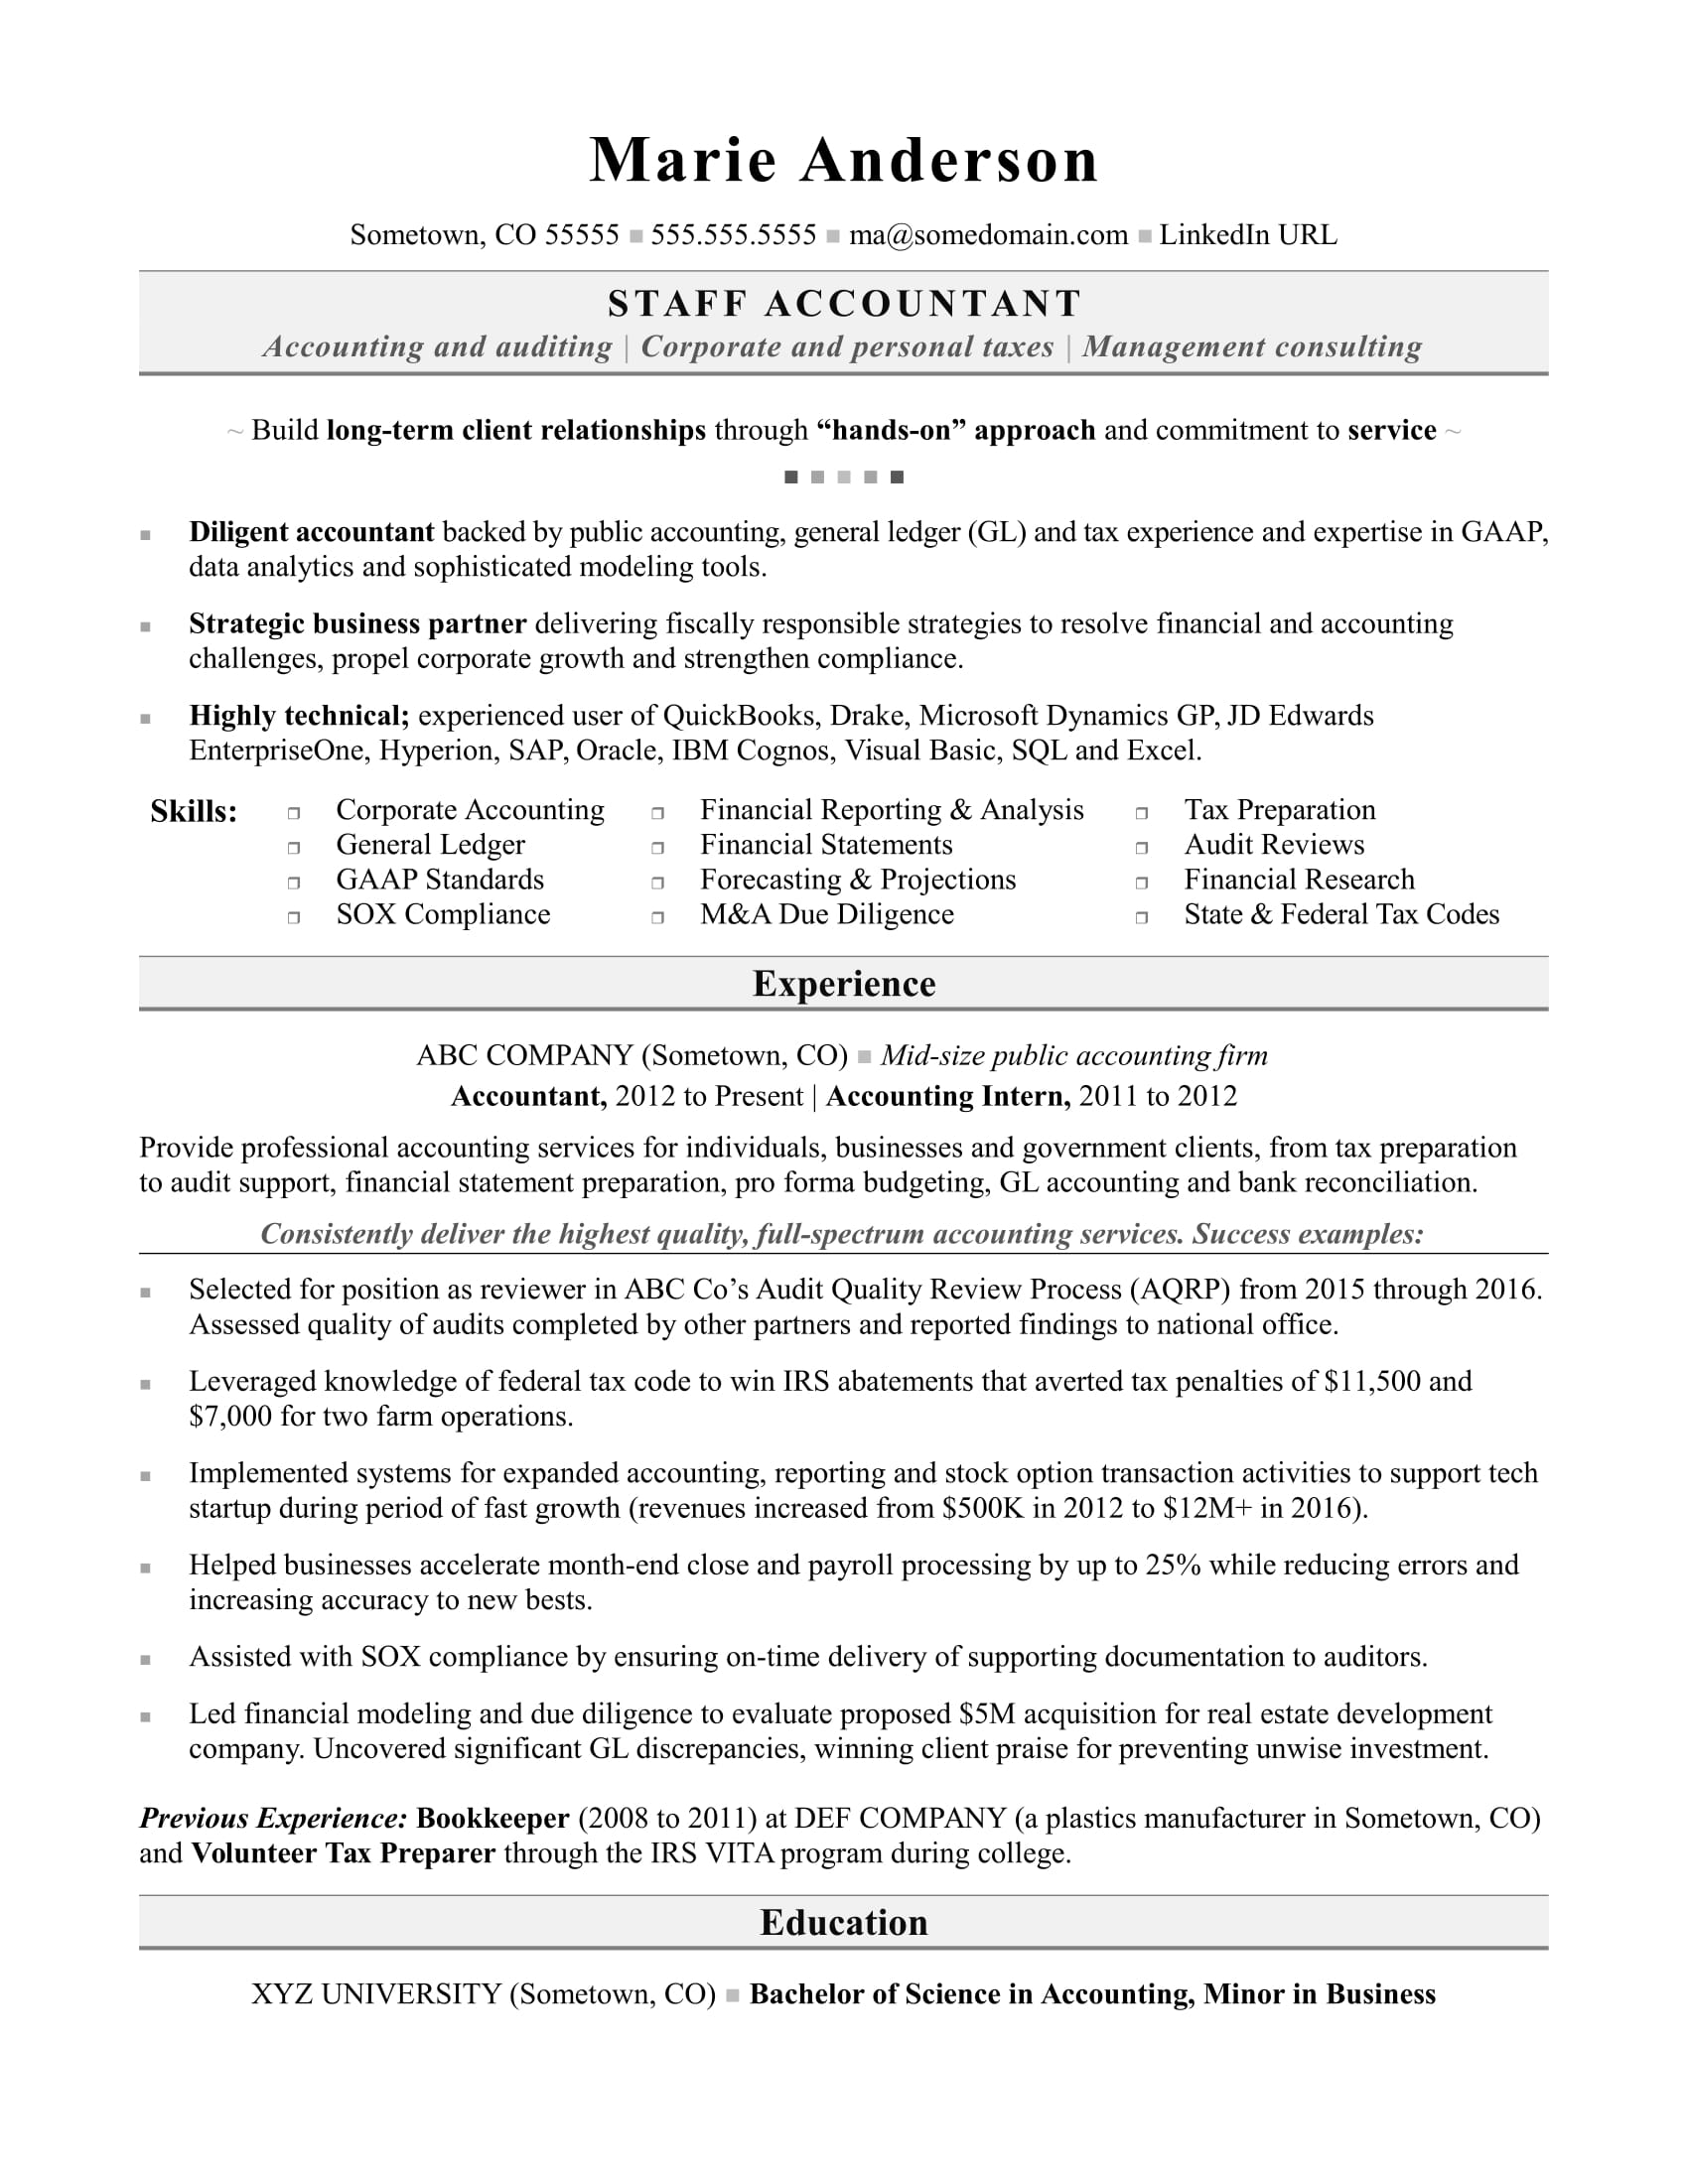 accounting resume sample monster job skills accountant best for any non destructive Resume Accounting Job Skills Resume